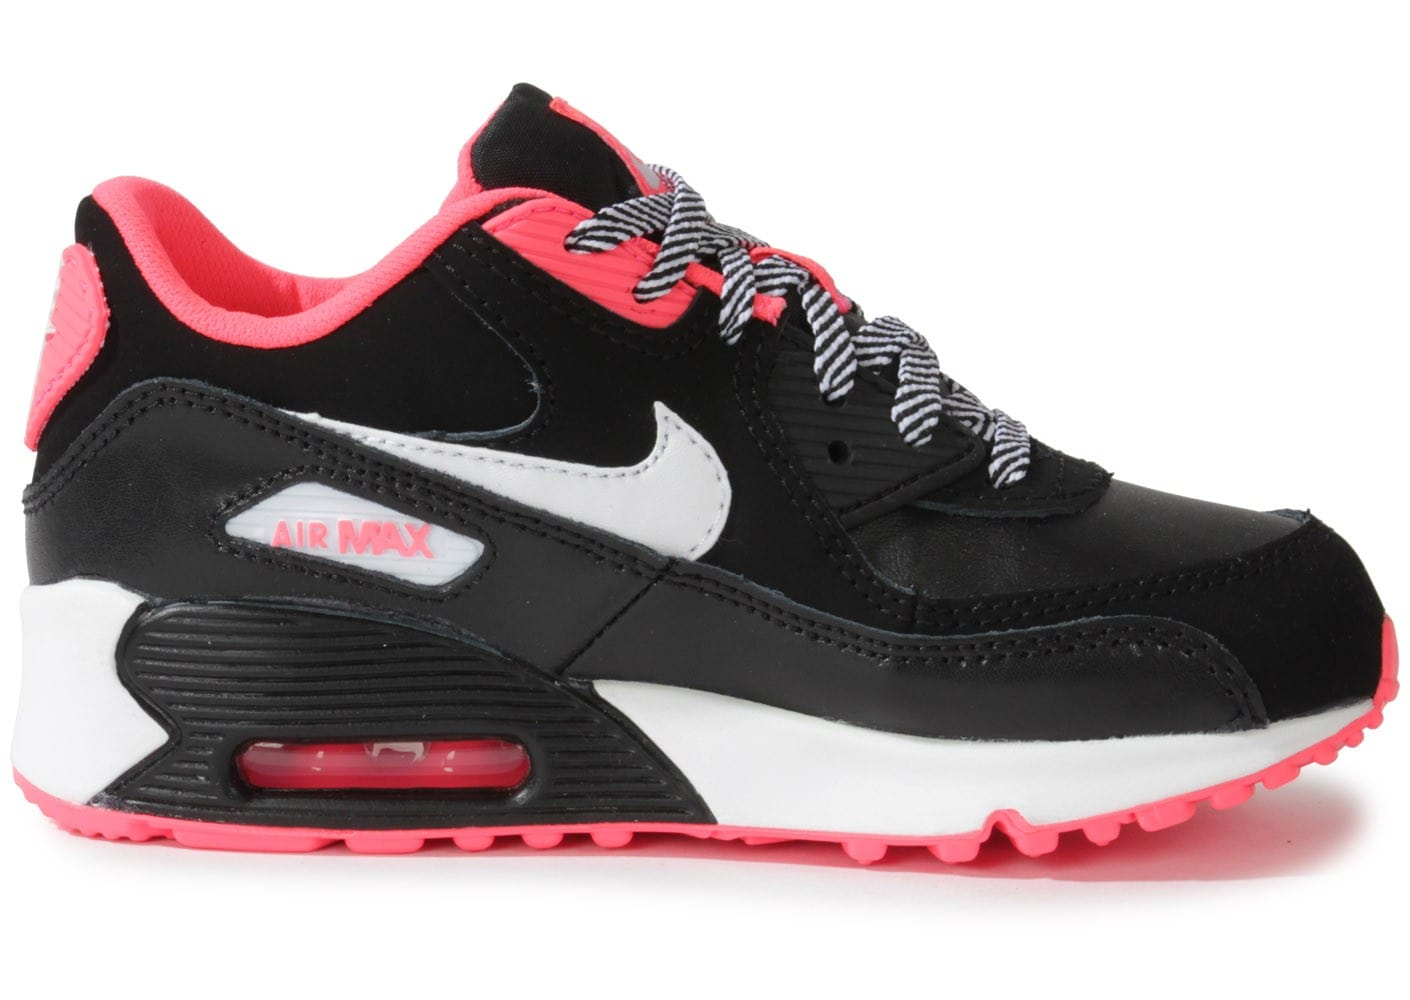 nike air max 90 enfant noir rose chaussures chaussures chausport. Black Bedroom Furniture Sets. Home Design Ideas